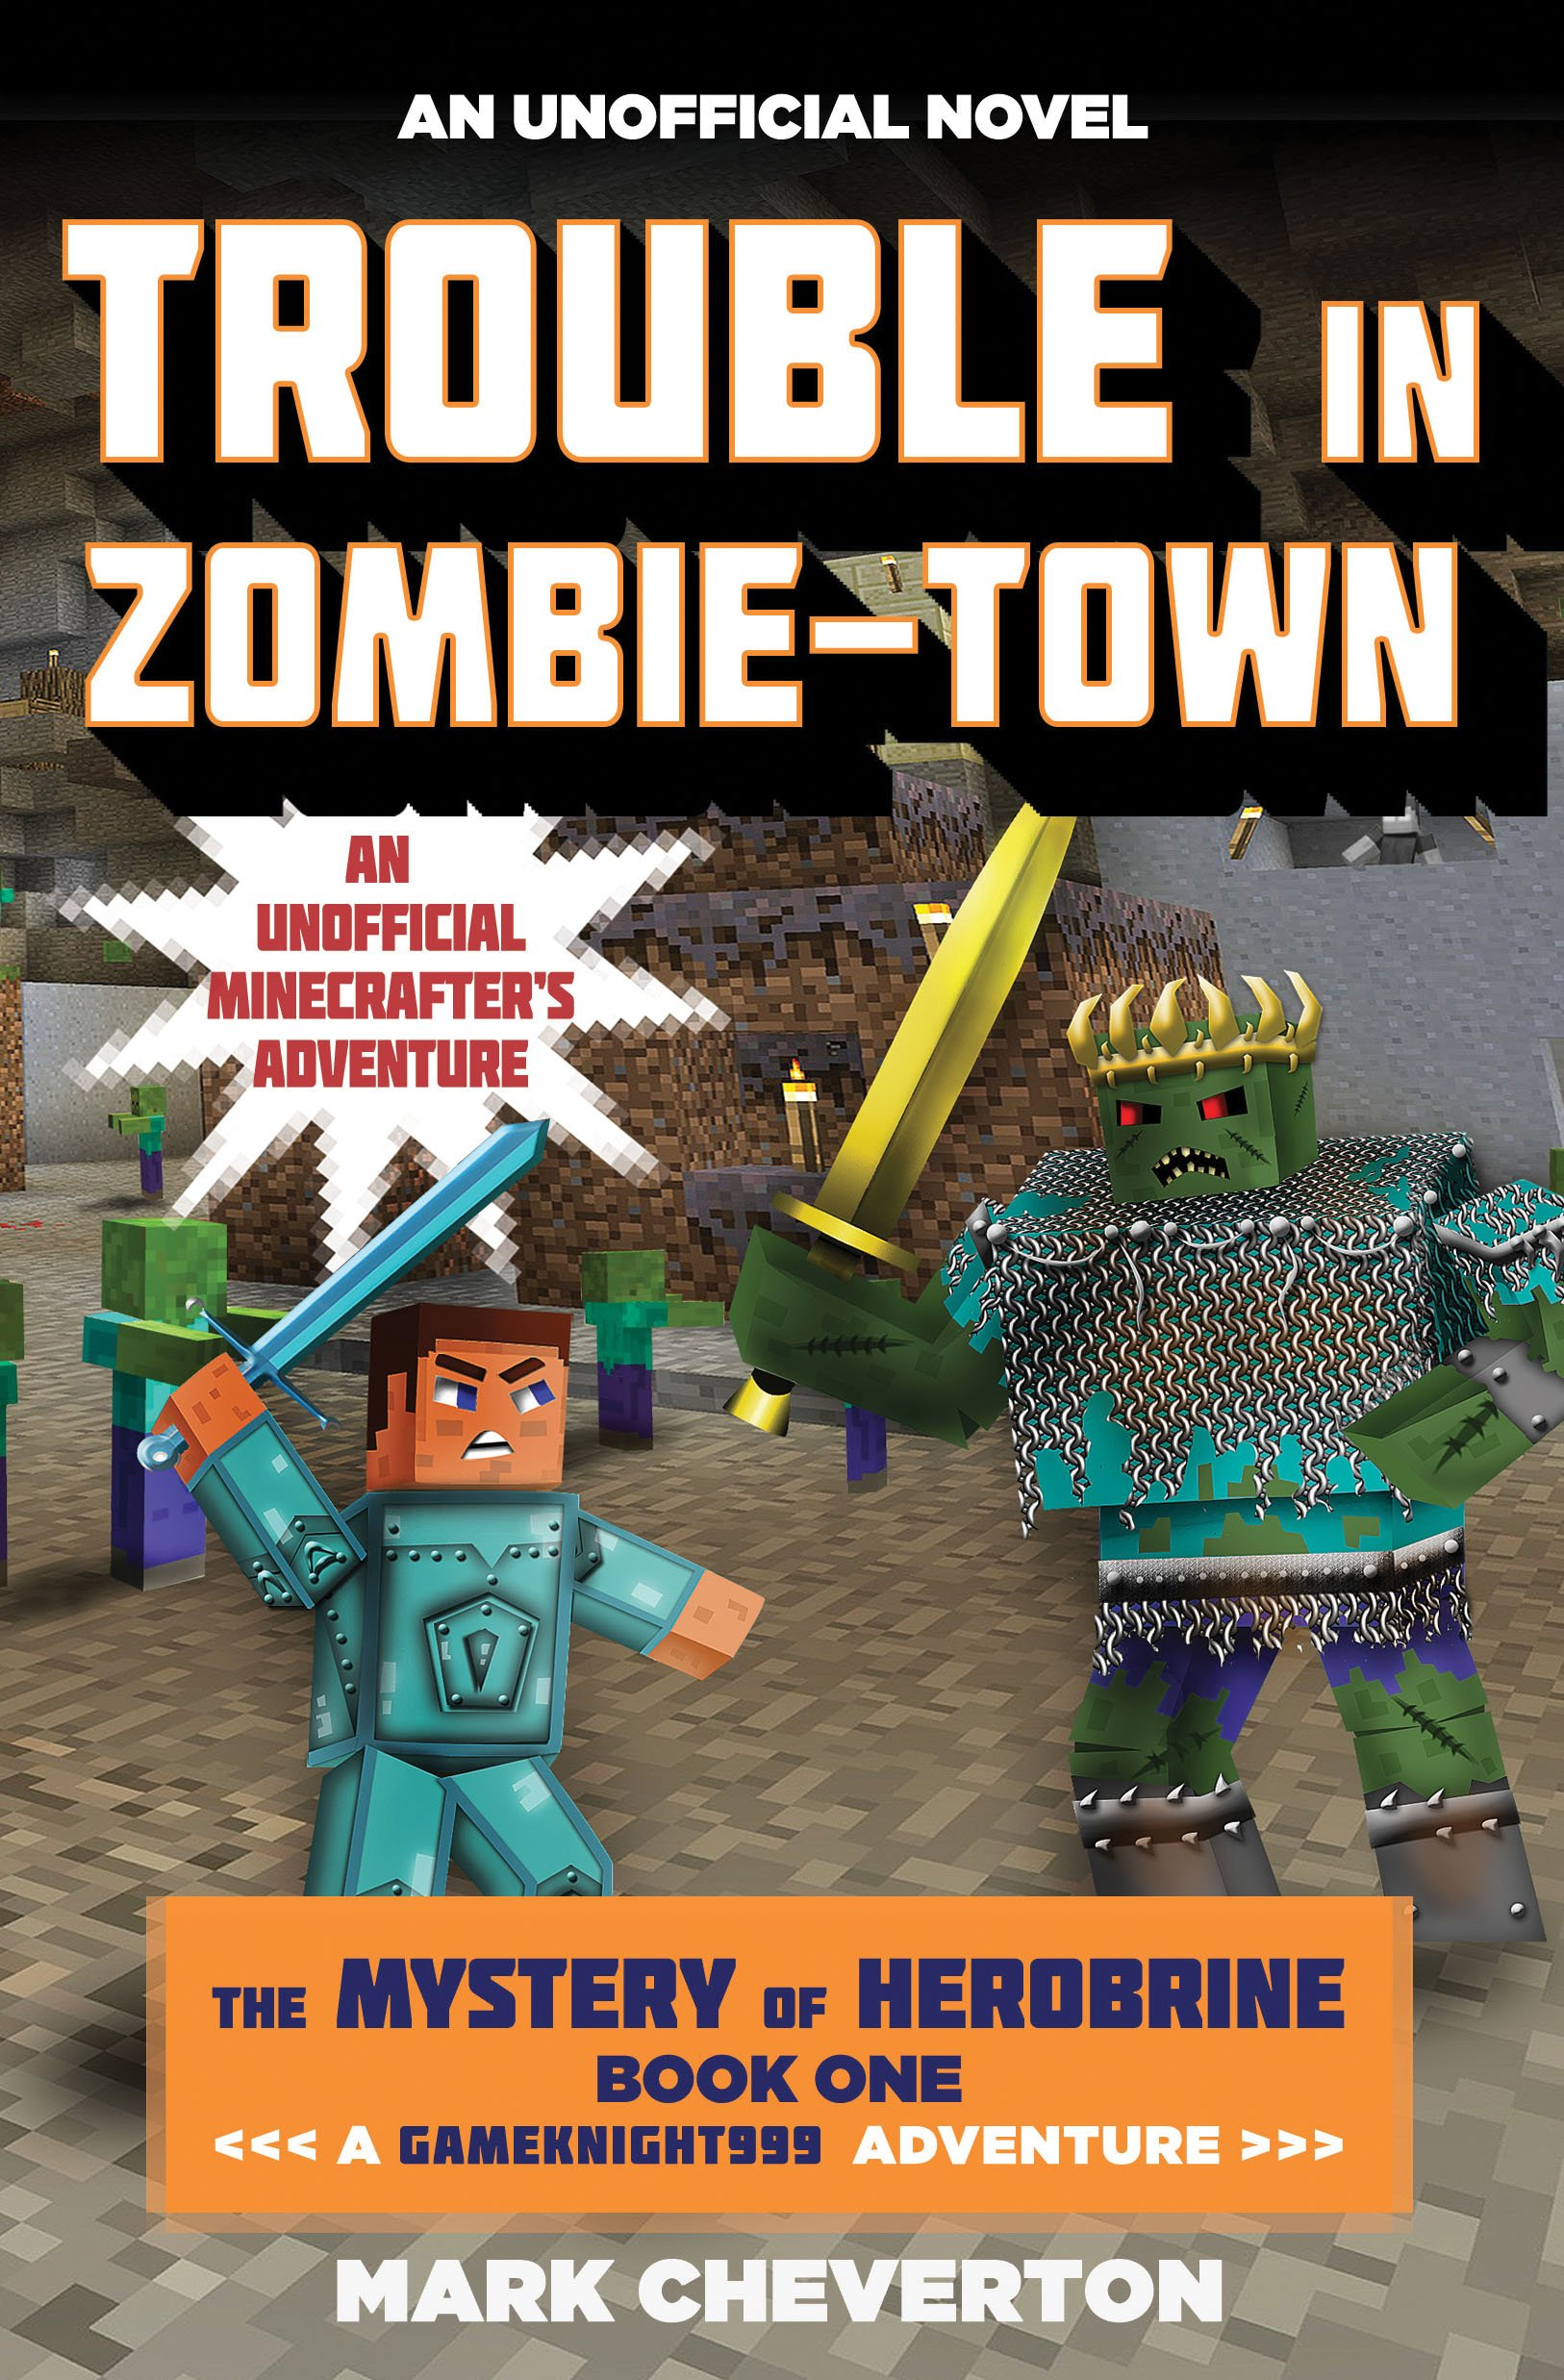 Trouble Zombie town Gameknight999 Unofficial Minecrafter%C2%92s product image